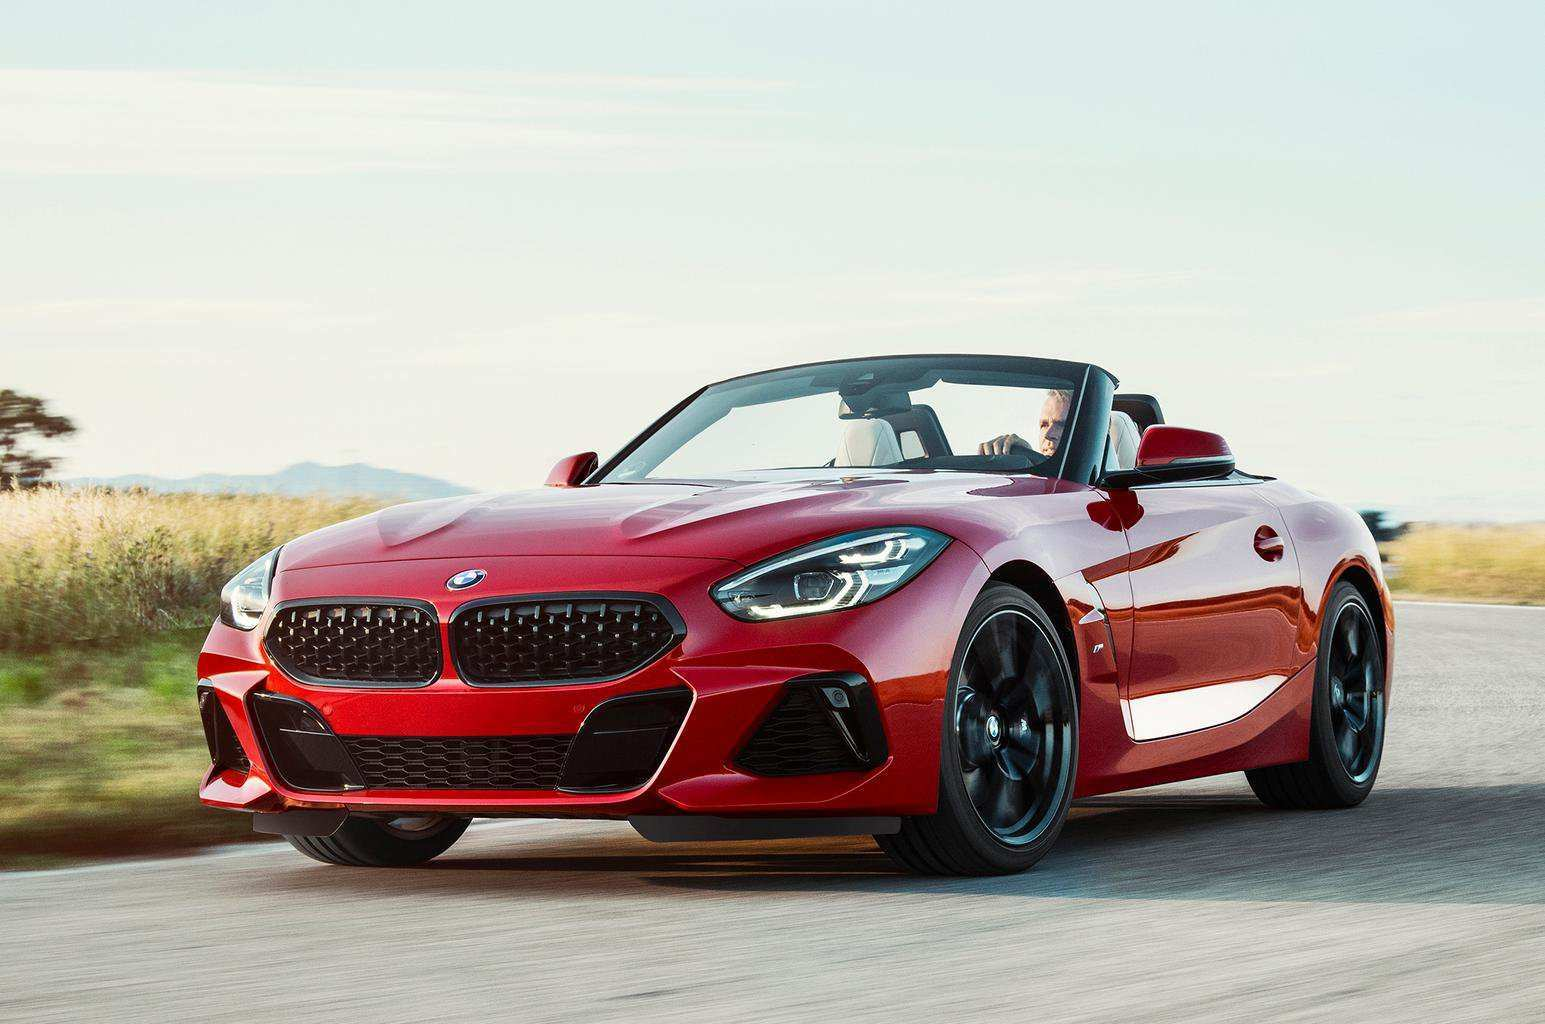 32 All New Best Bmw New Z4 2019 New Release Model with Best Bmw New Z4 2019 New Release